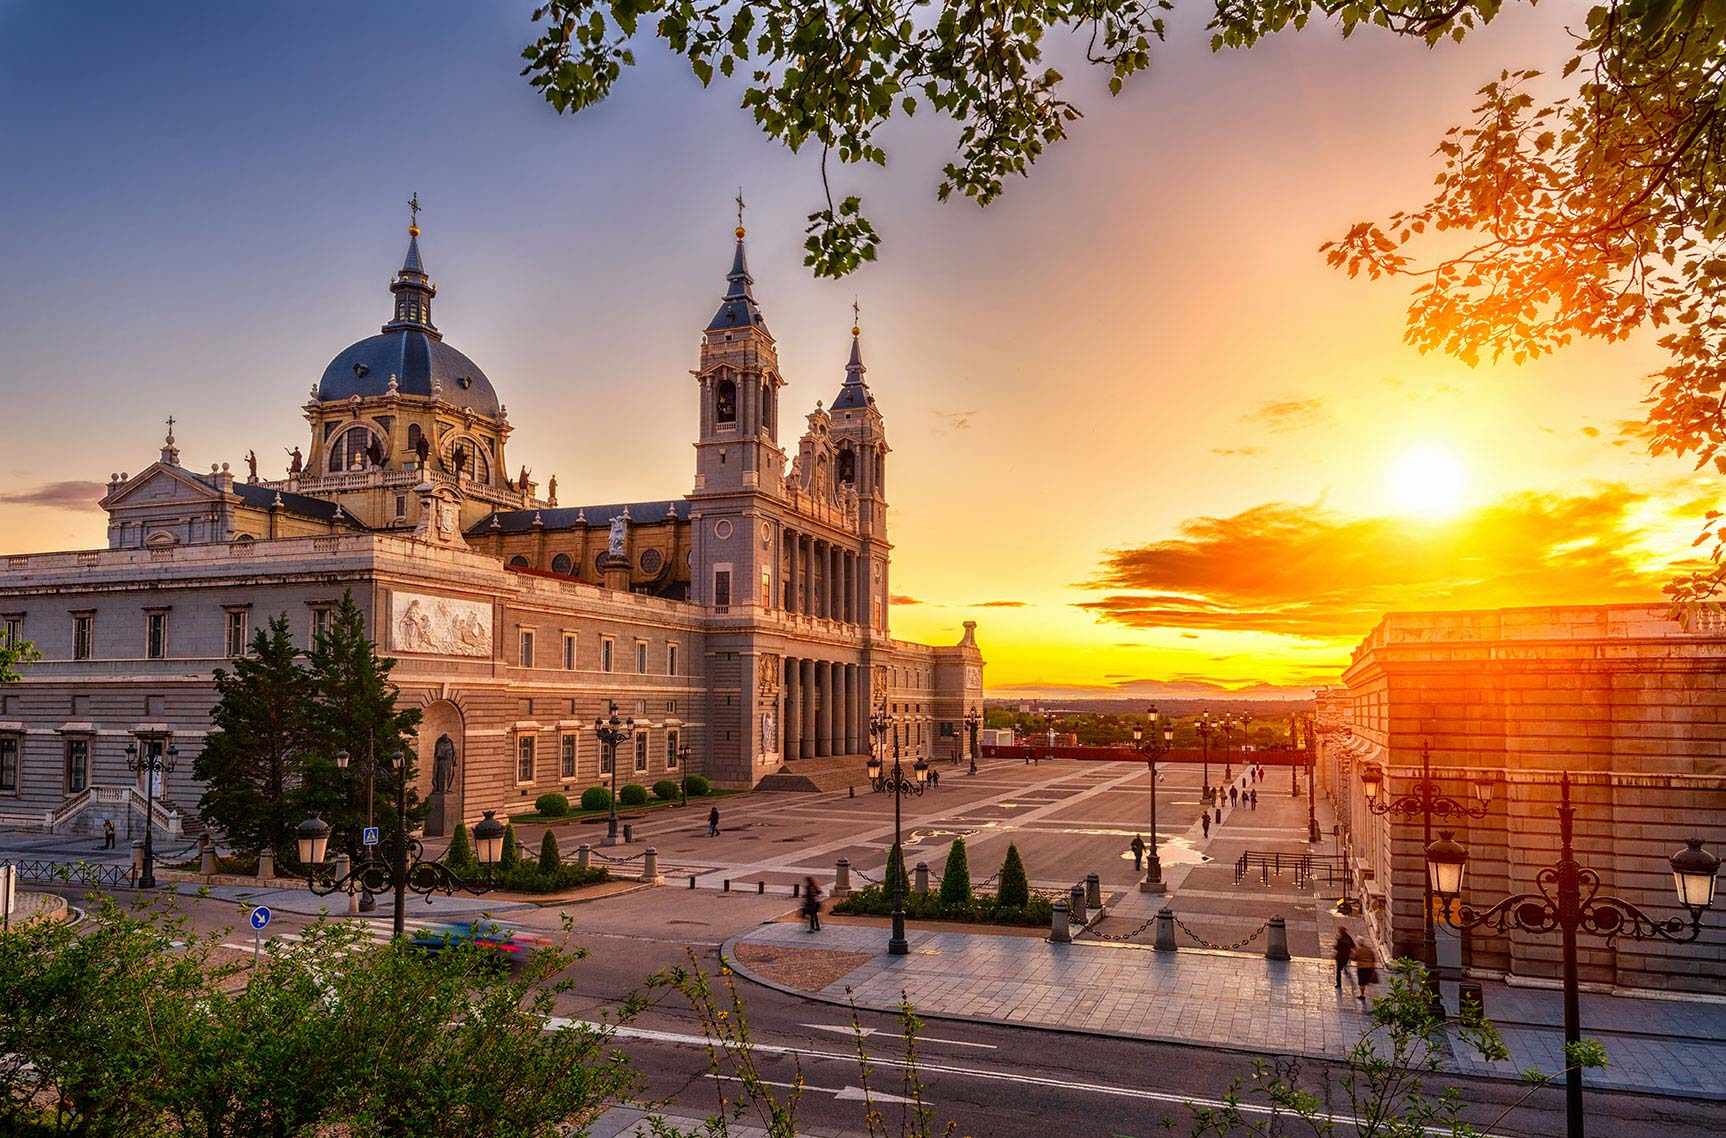 A view of downtown Madrid at sunset